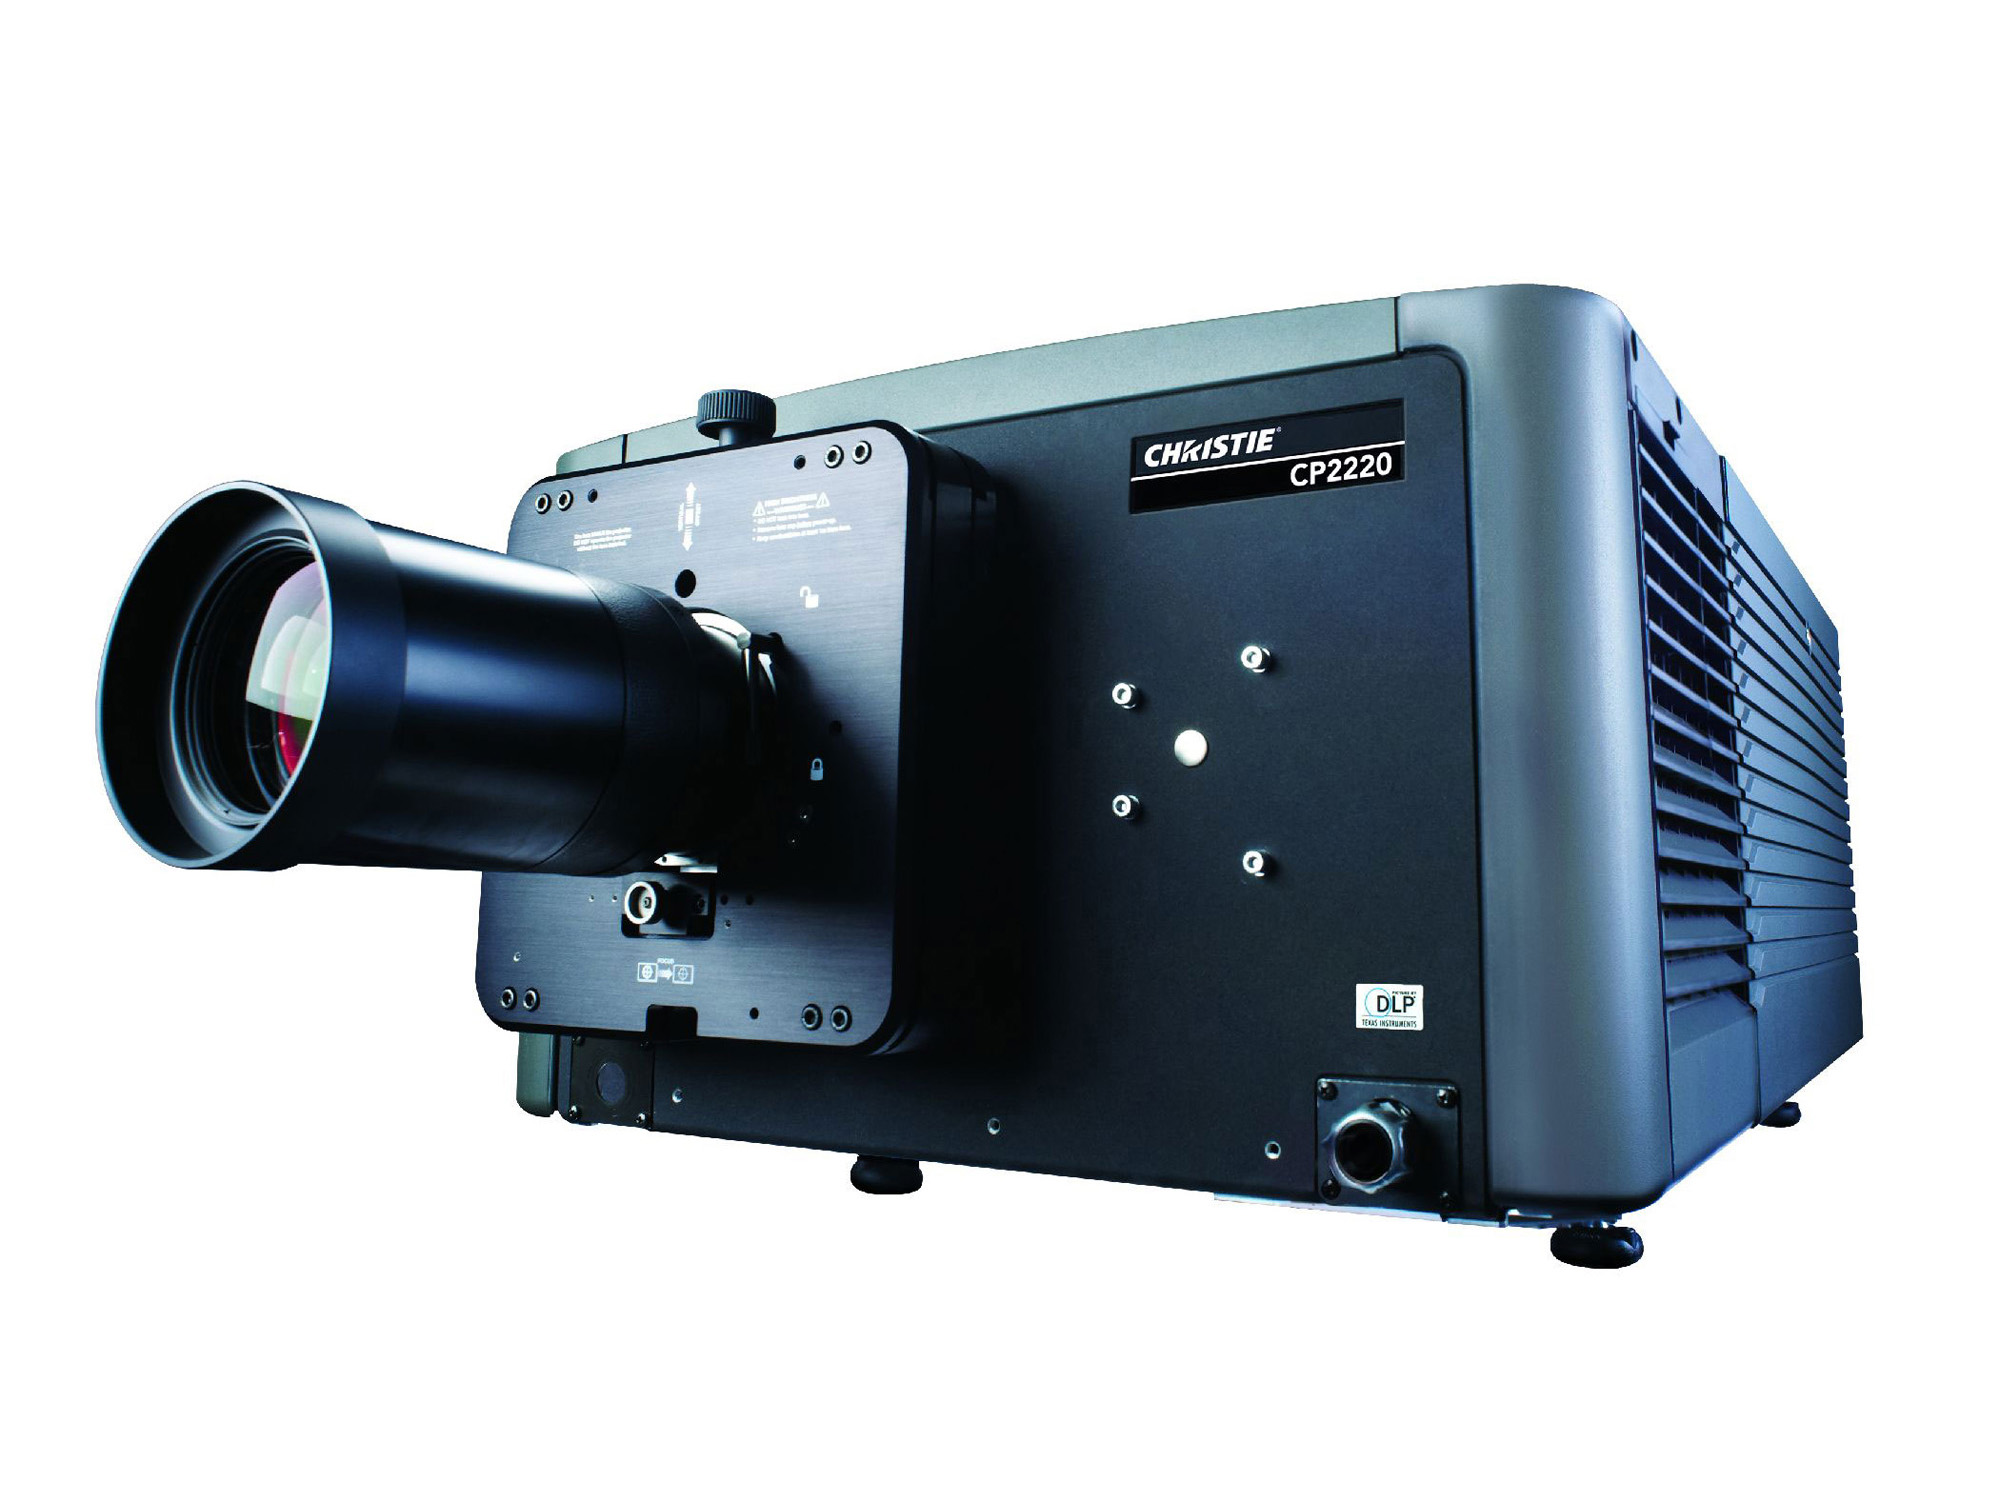 /globalassets/.catalog/products/images/christie-cp2220/gallery/cp2220-digital-cinema-projector-lowright.jpg